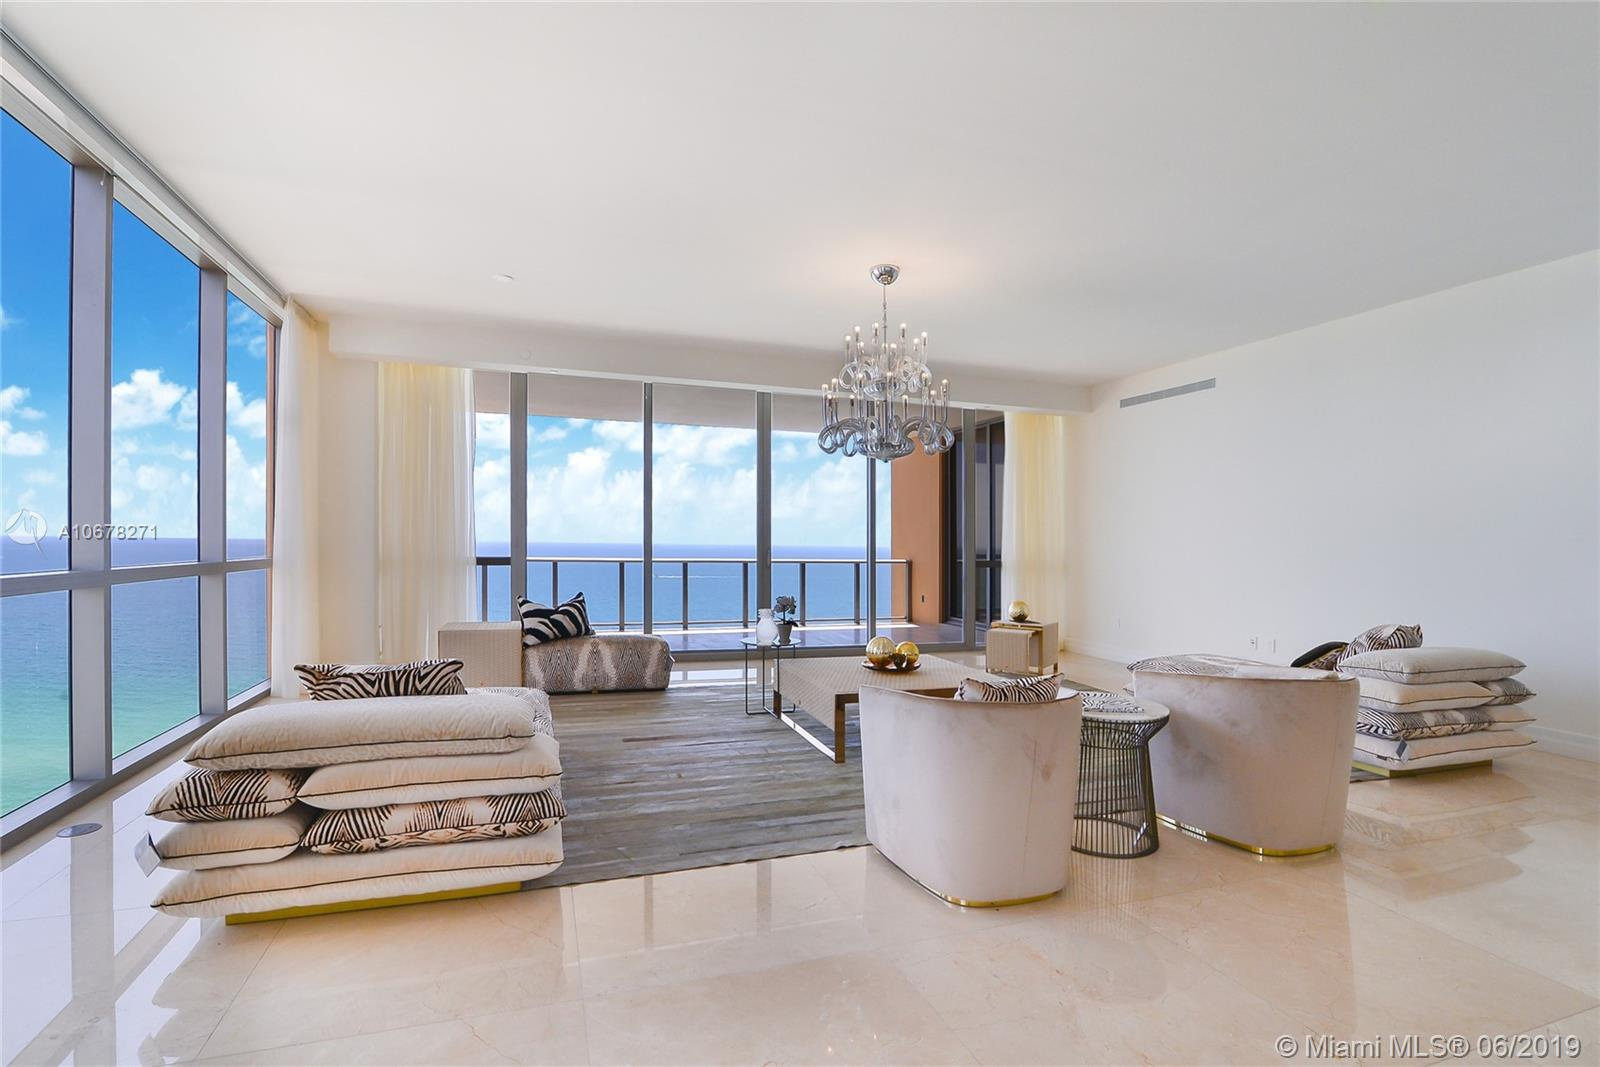 17749 Collins Ave, Unit #1601 Luxury Real Estate